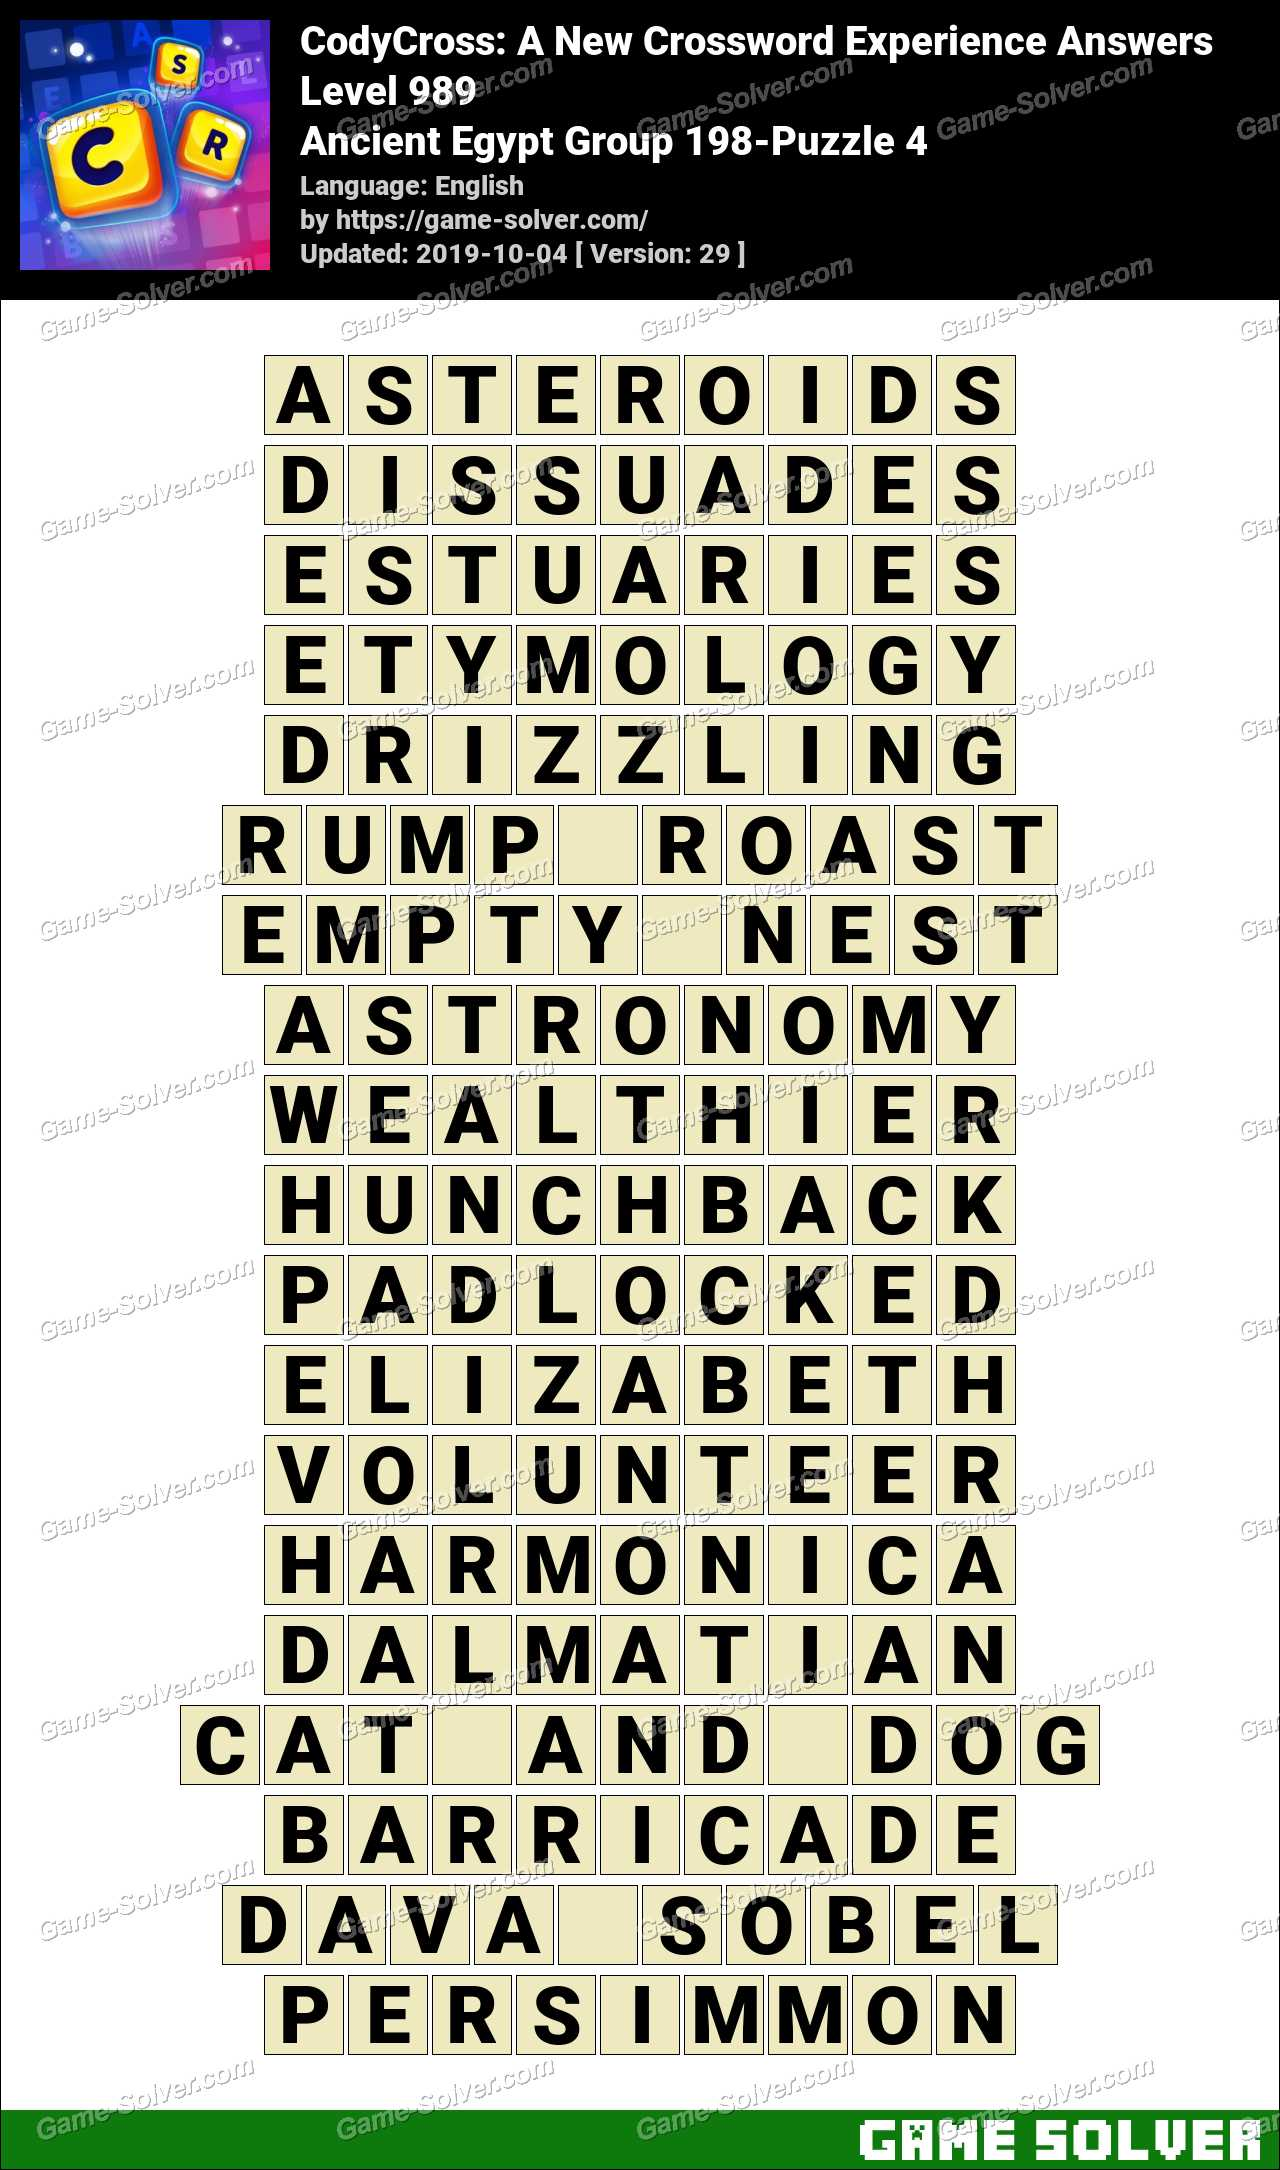 CodyCross Ancient Egypt Group 198-Puzzle 4 Answers